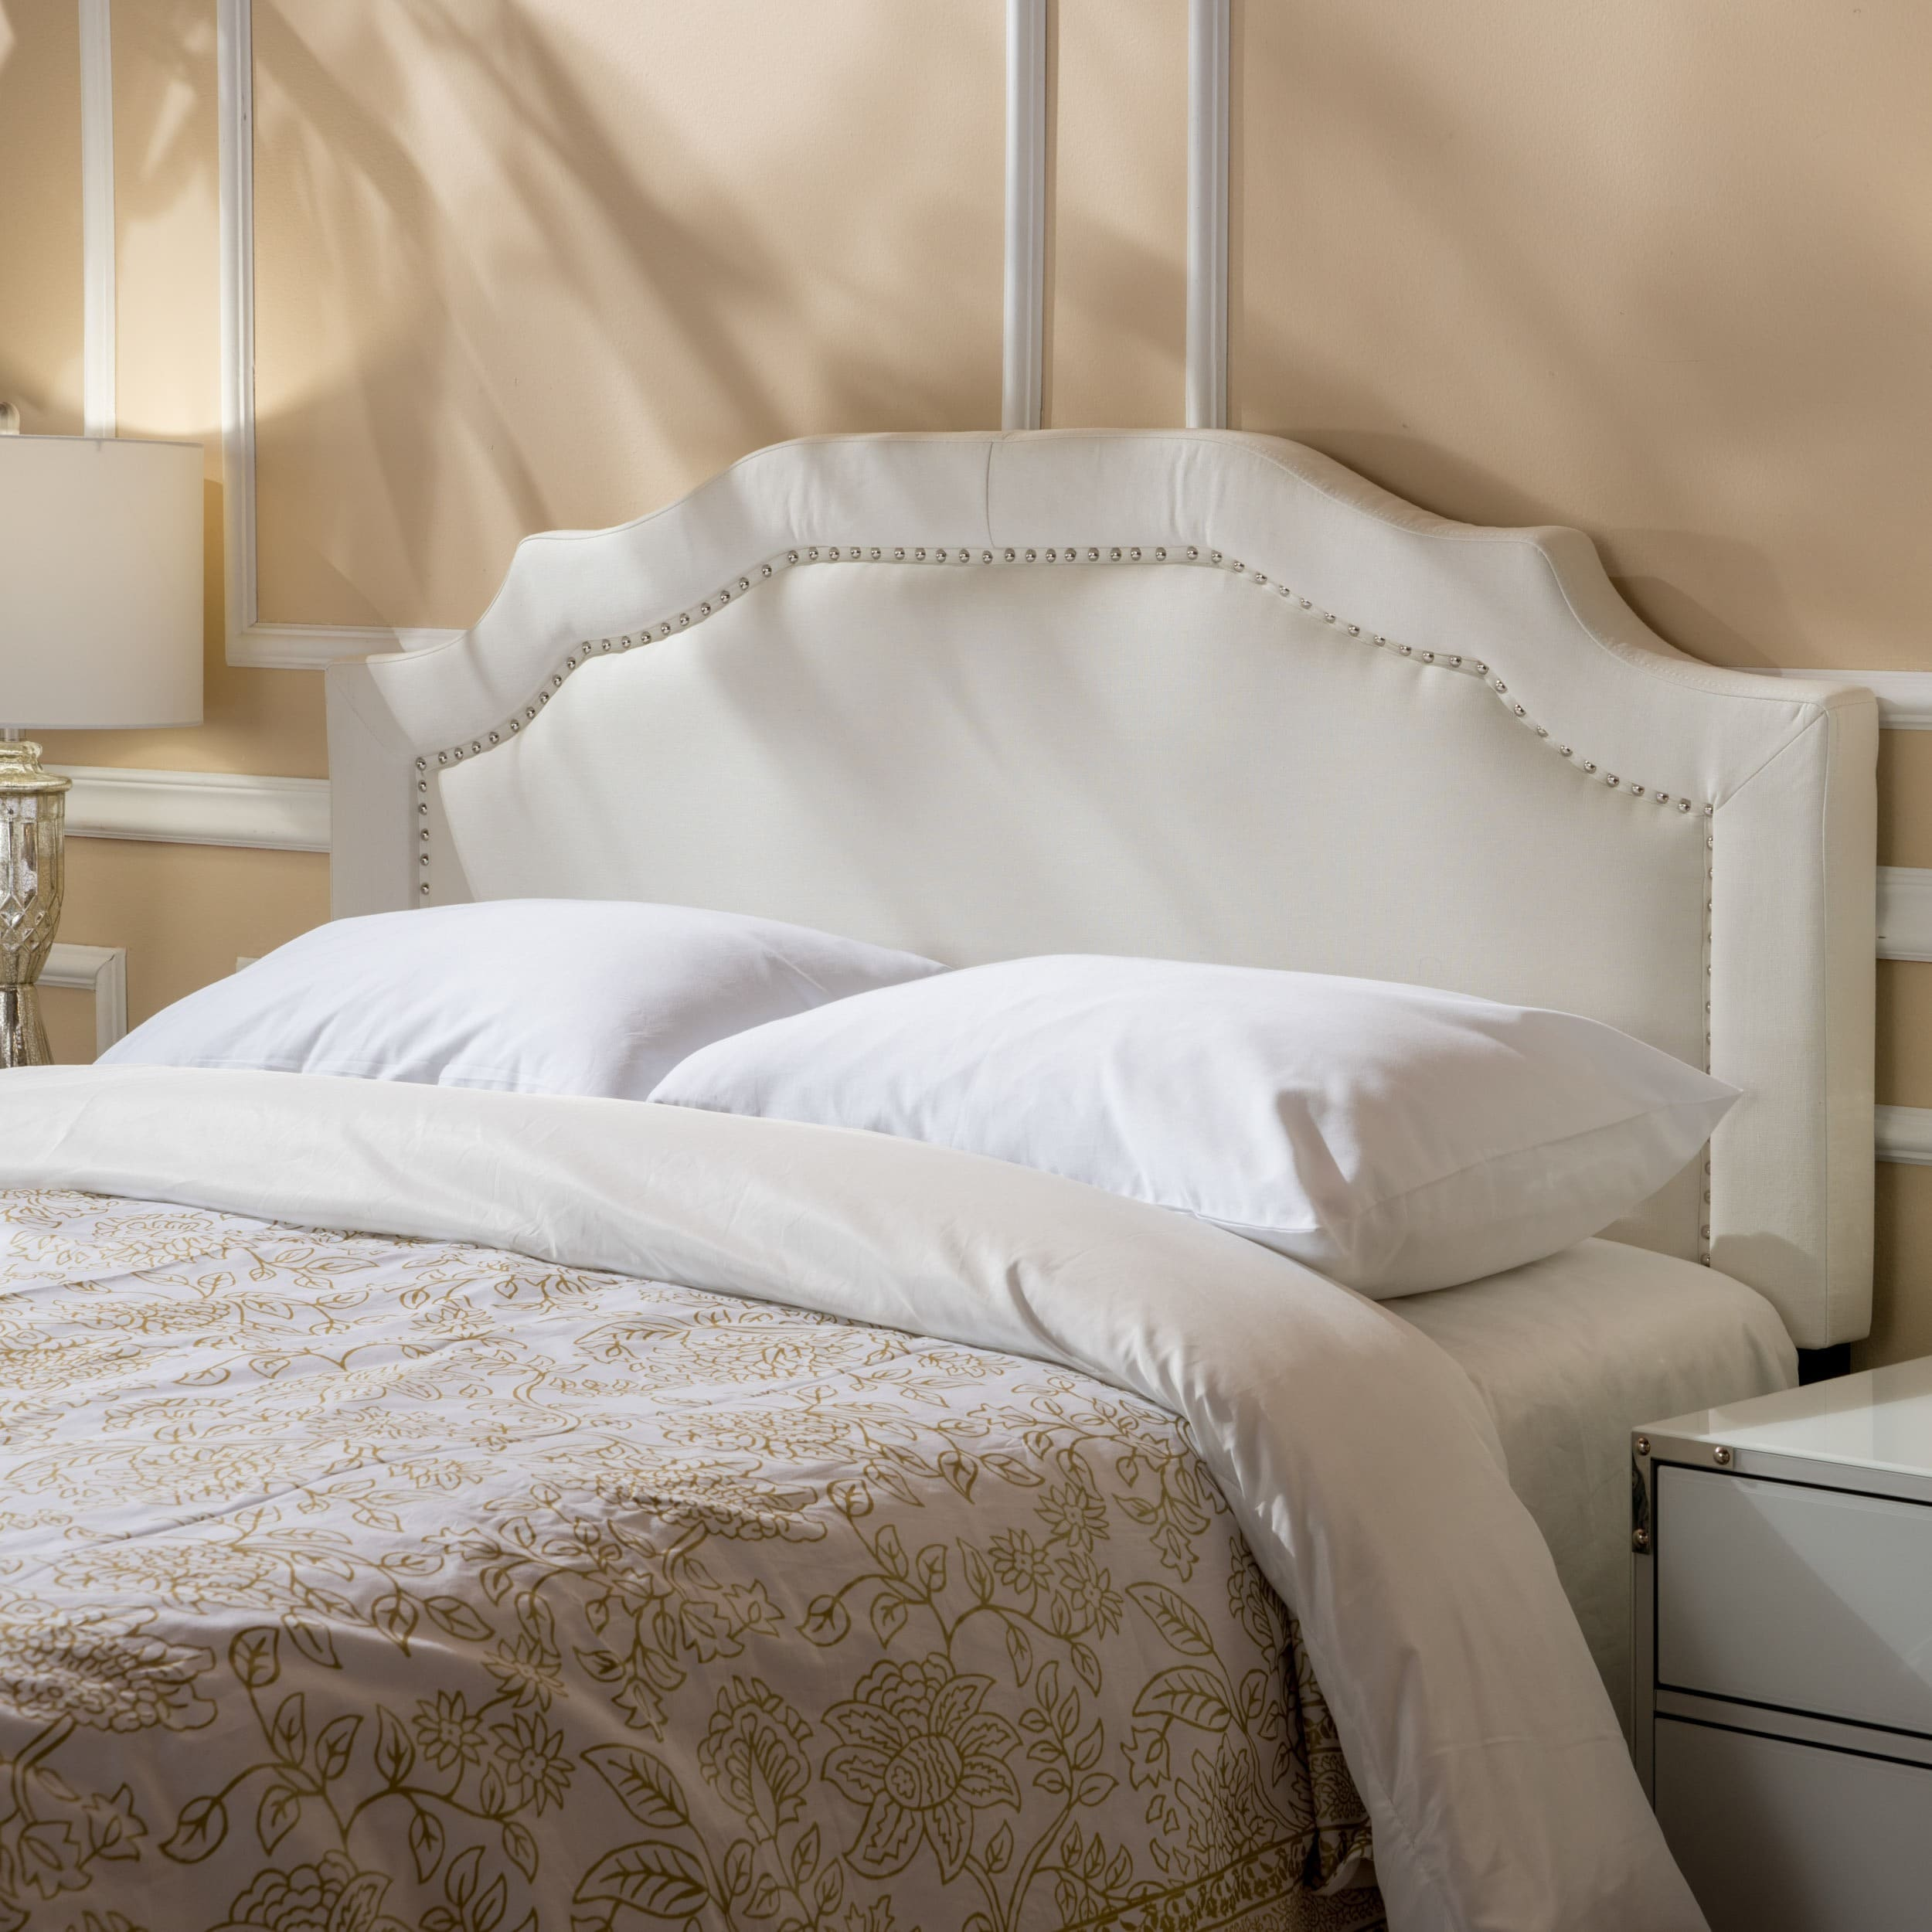 Buy Shabby Chic Headboards Online at Overstock | Our Best Bedroom